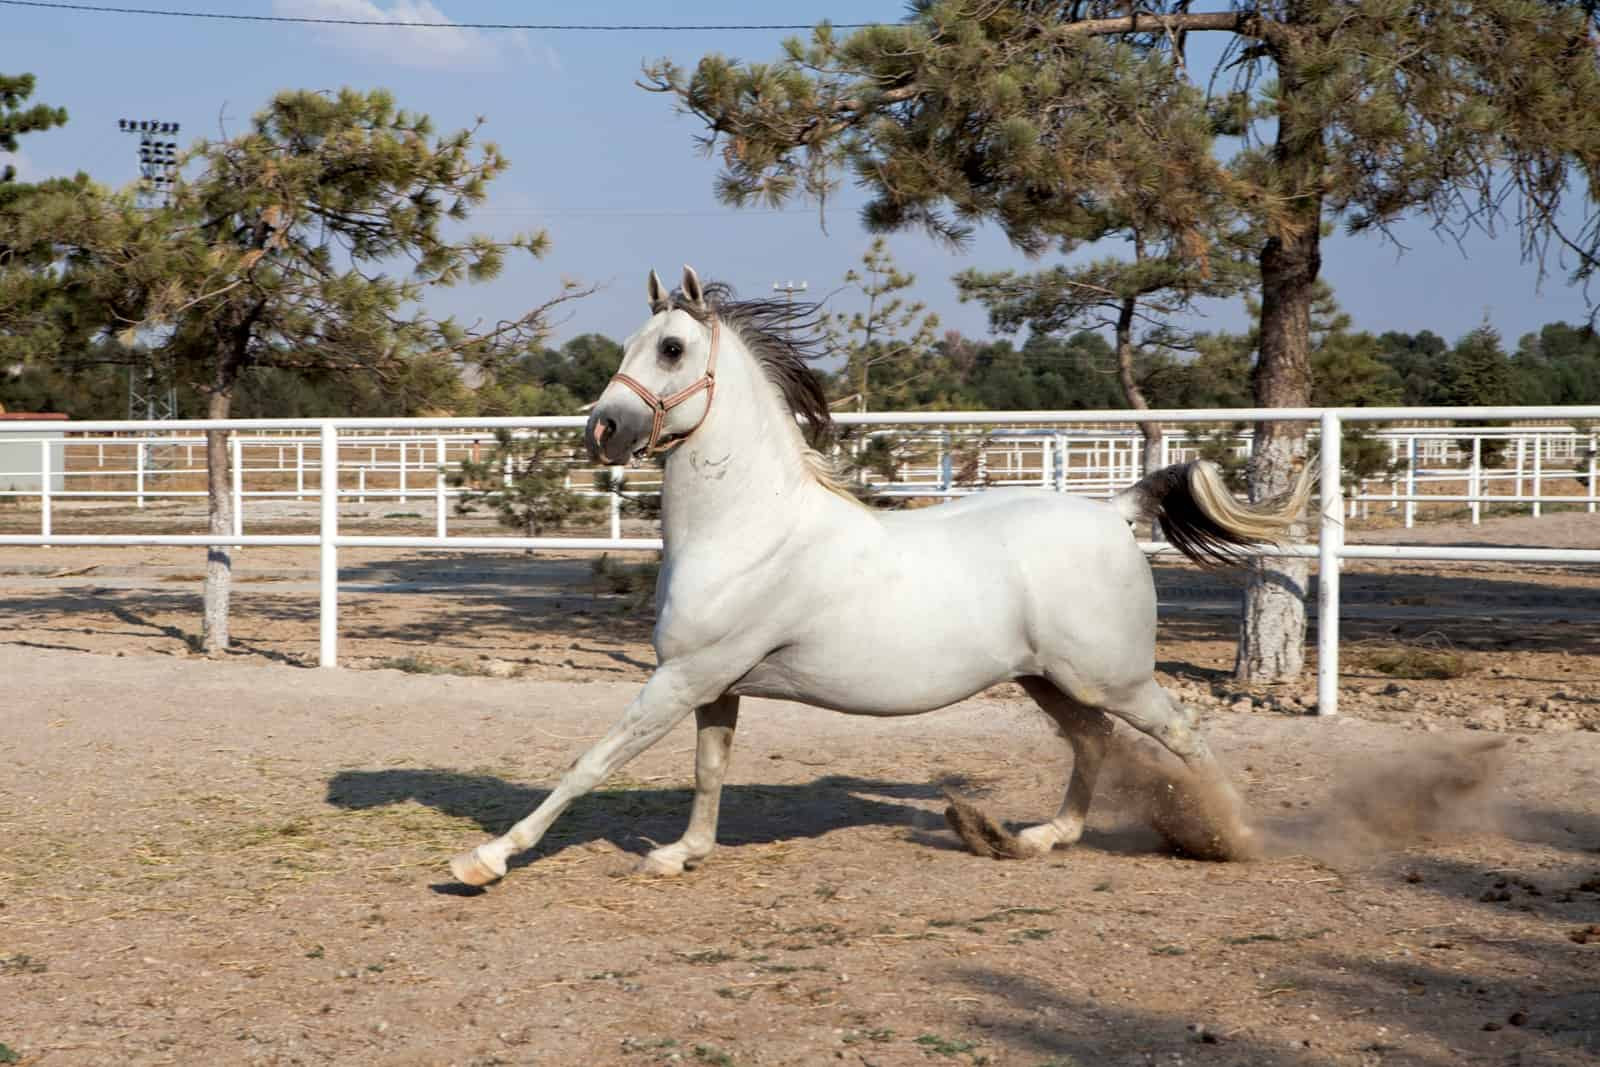 Separation Anxiety in Horses